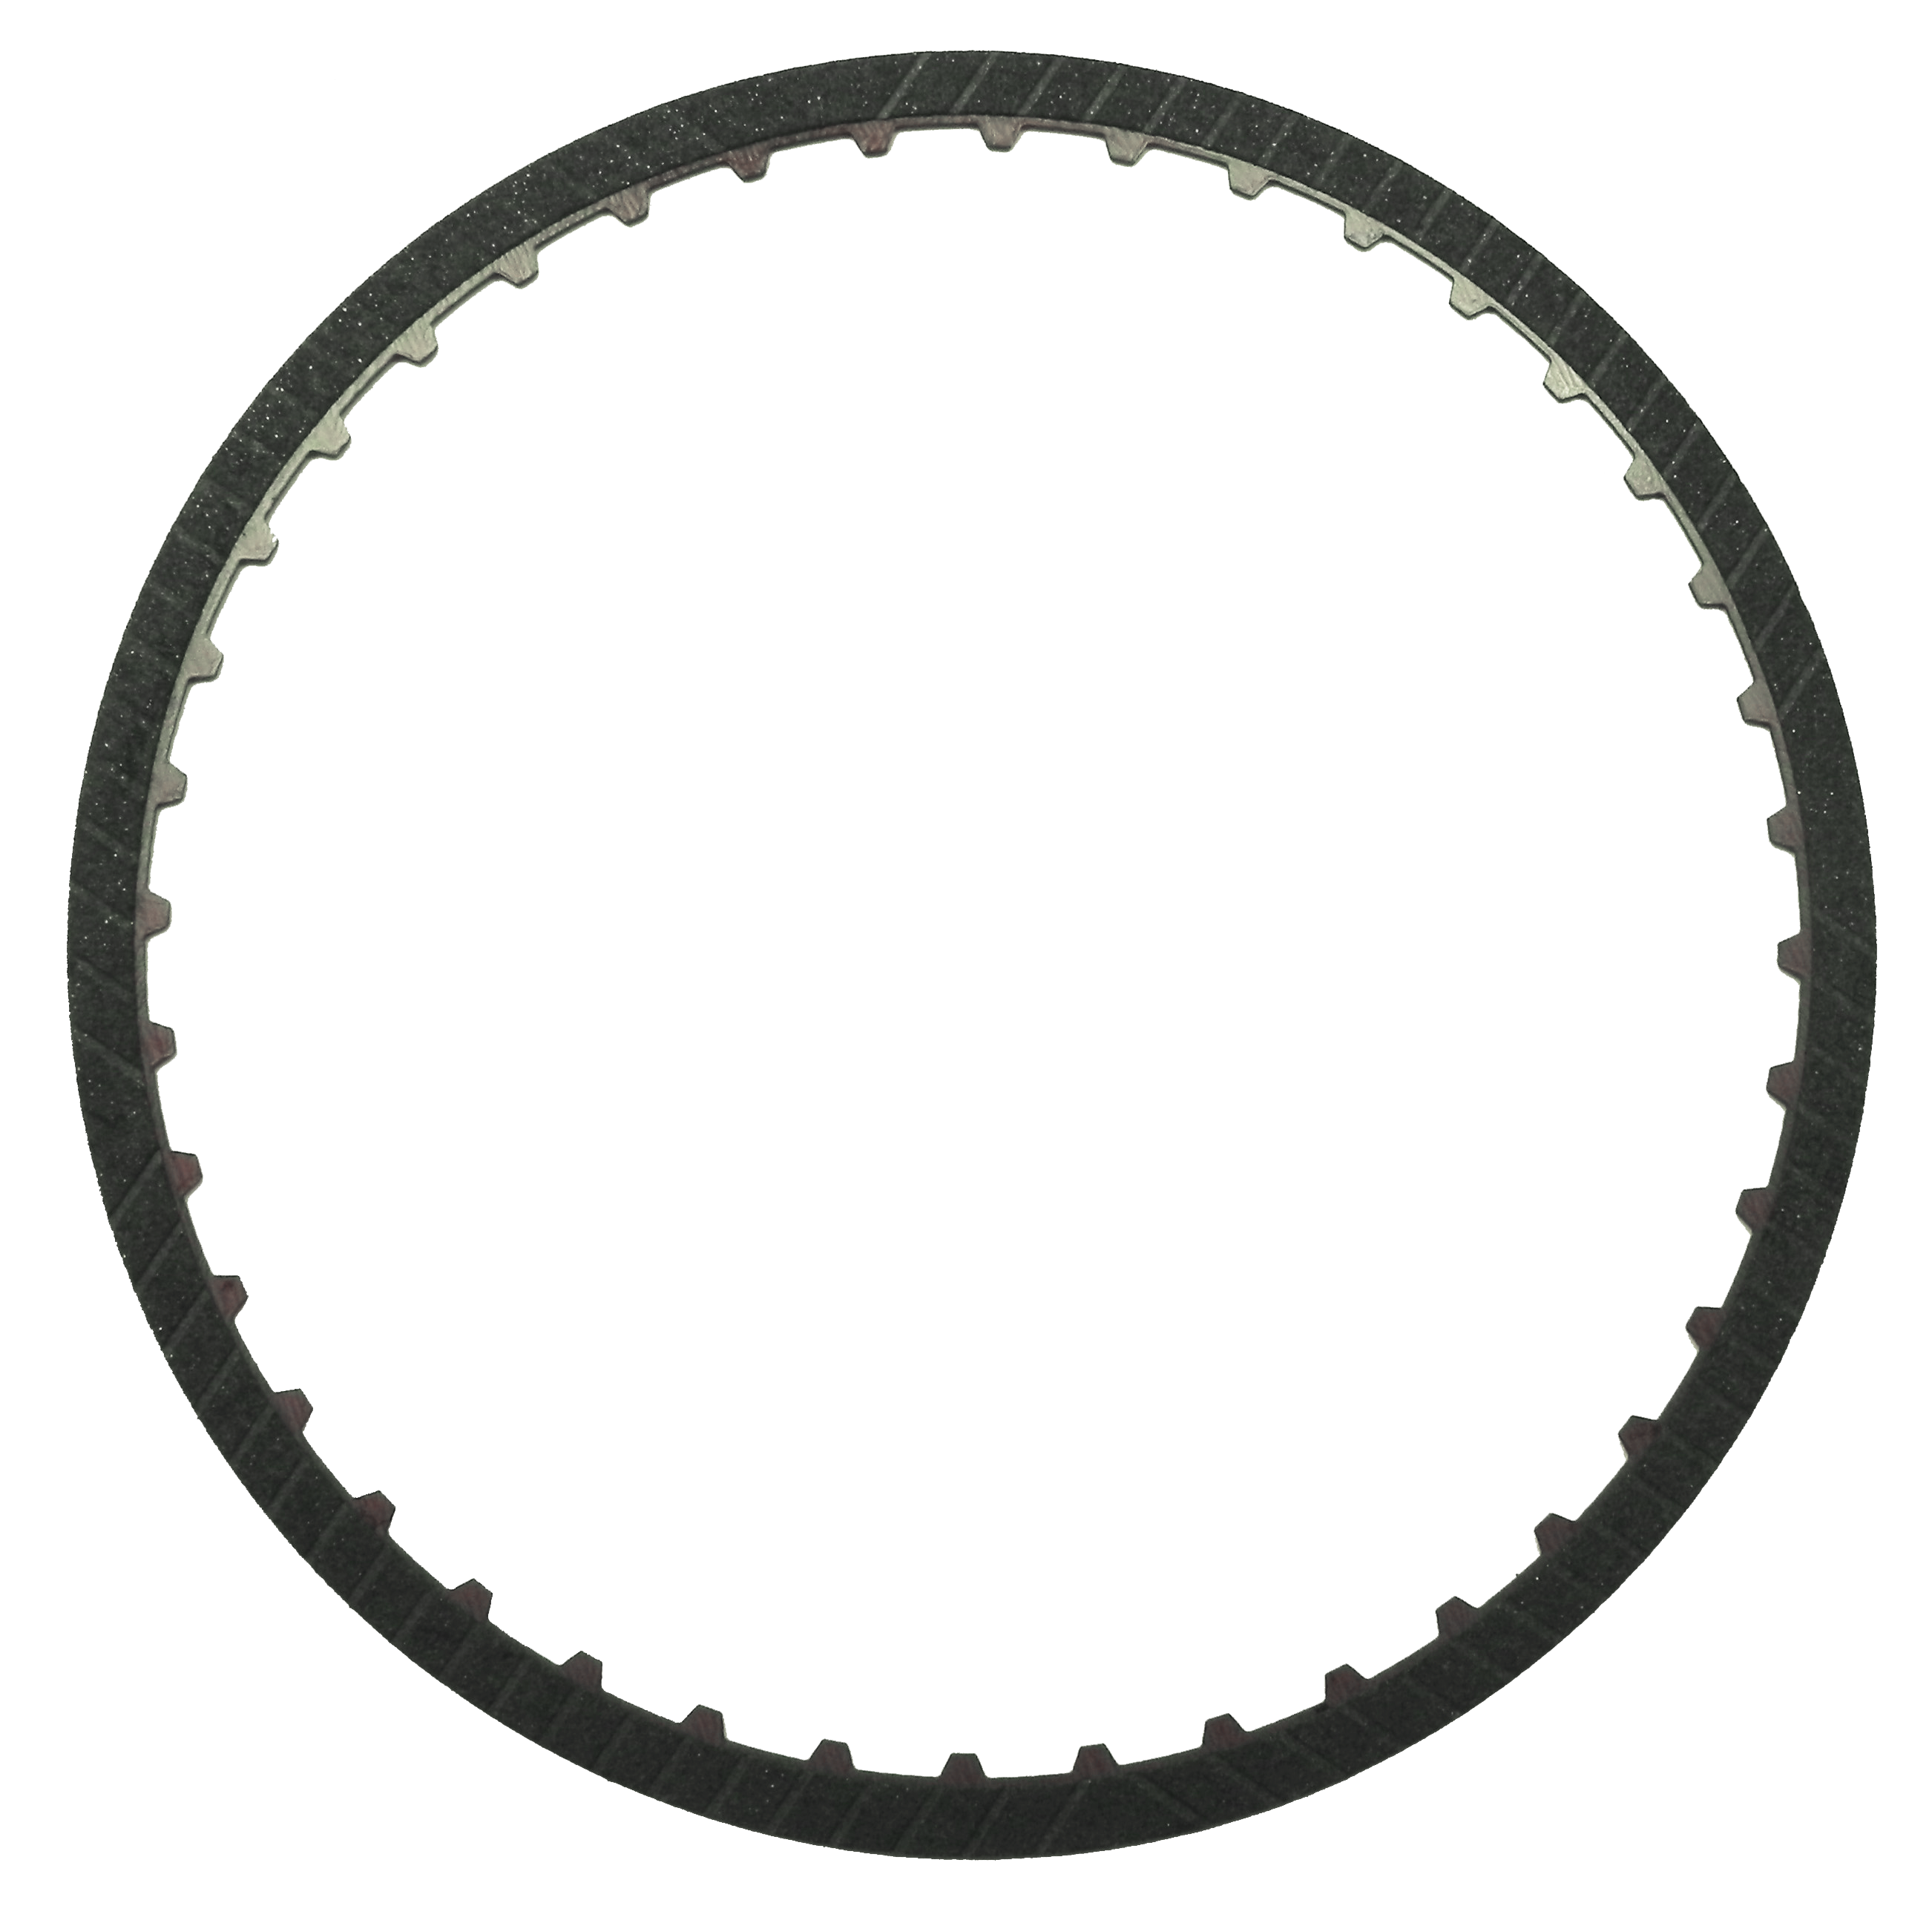 R520015 | 2003-ON Friction Clutch Plate High Energy Reverse High Energy